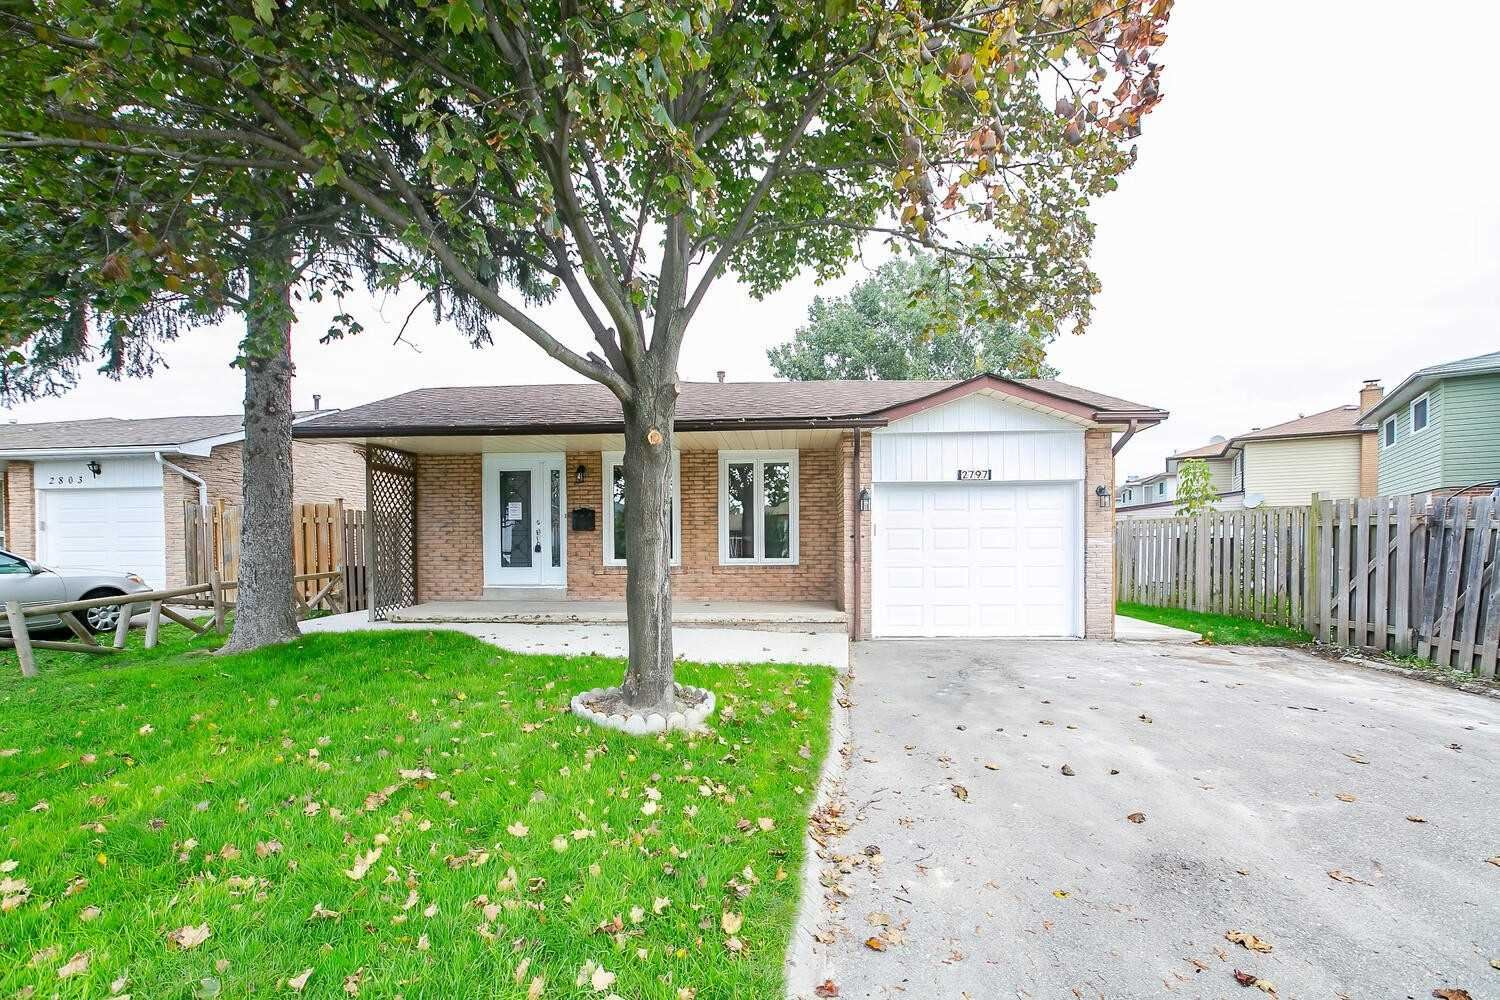 2797 Council Ring Rd, Mississauga, ON L5L 1W3 - MLS#: W5402661